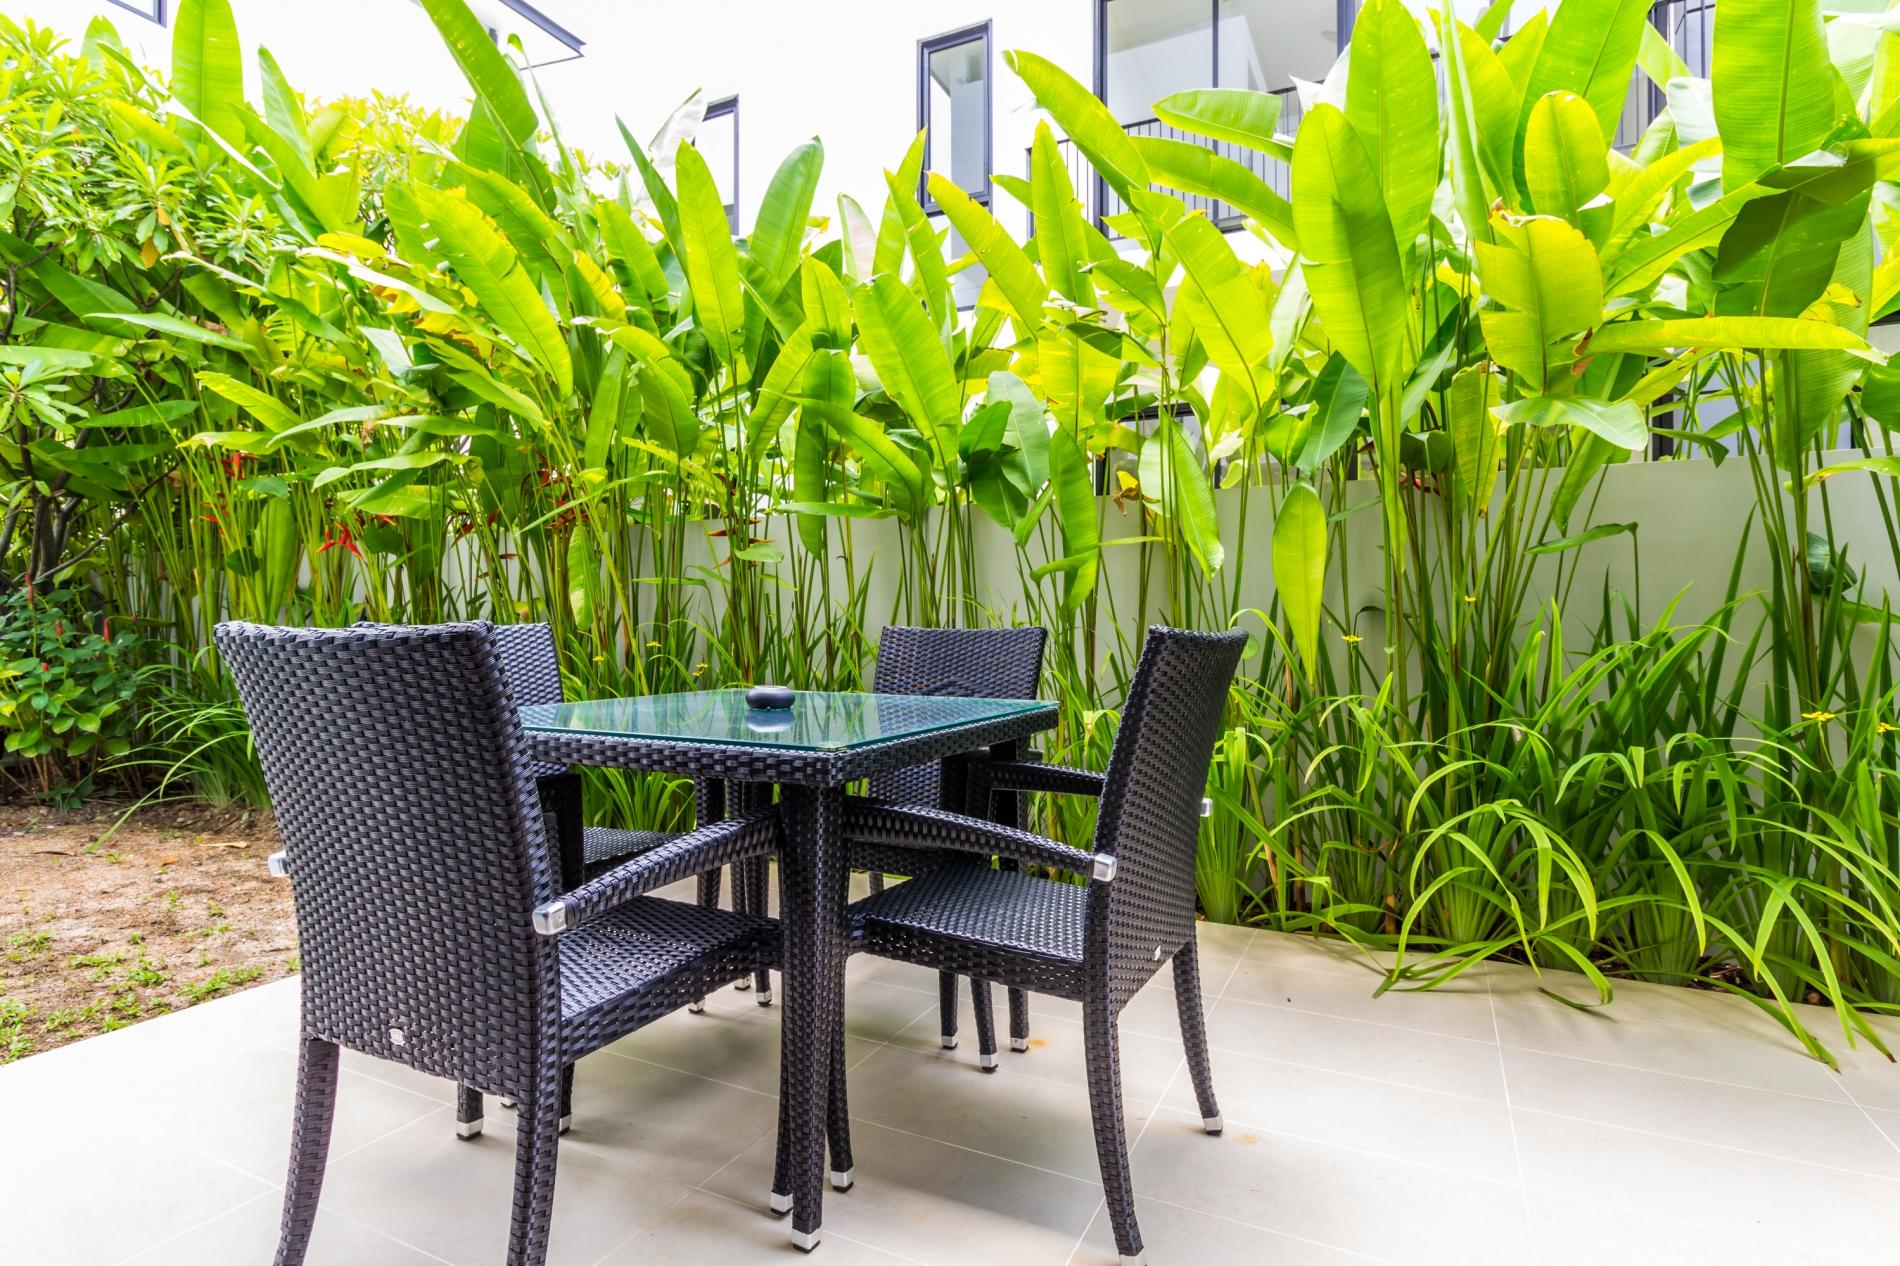 Apartment LP101 - Private rooftop pool villa in Laguna for 9 people  near restaurants and shops photo 16813062